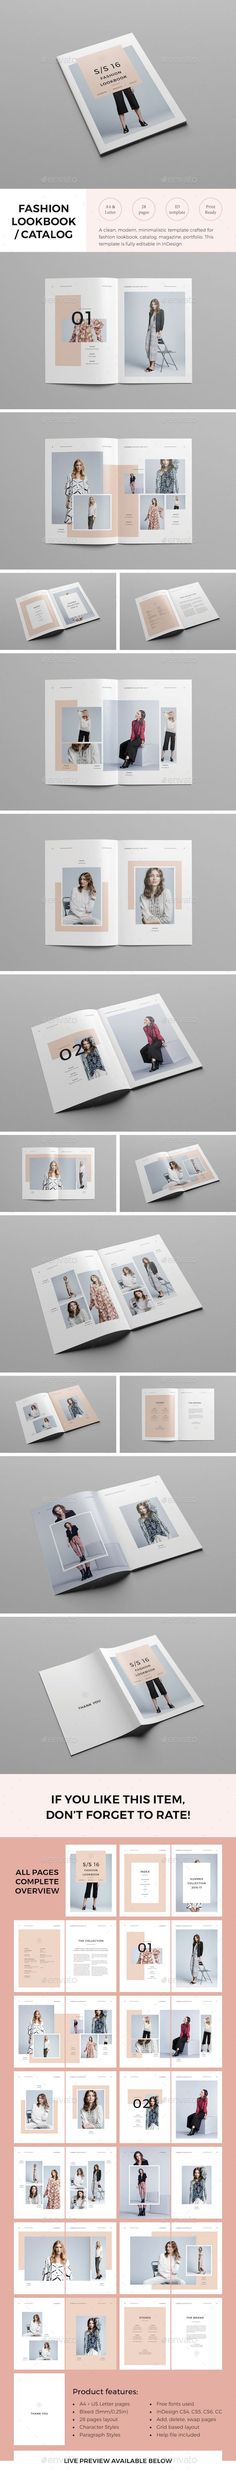 42 new Ideas fashion magazine design layout look books Portfolio Design, Portfolio Layout, Fashion Portfolio, Portfolio Booklet, Portfolio Covers, Lookbook Layout, Lookbook Design, Editorial Layout, Editorial Design